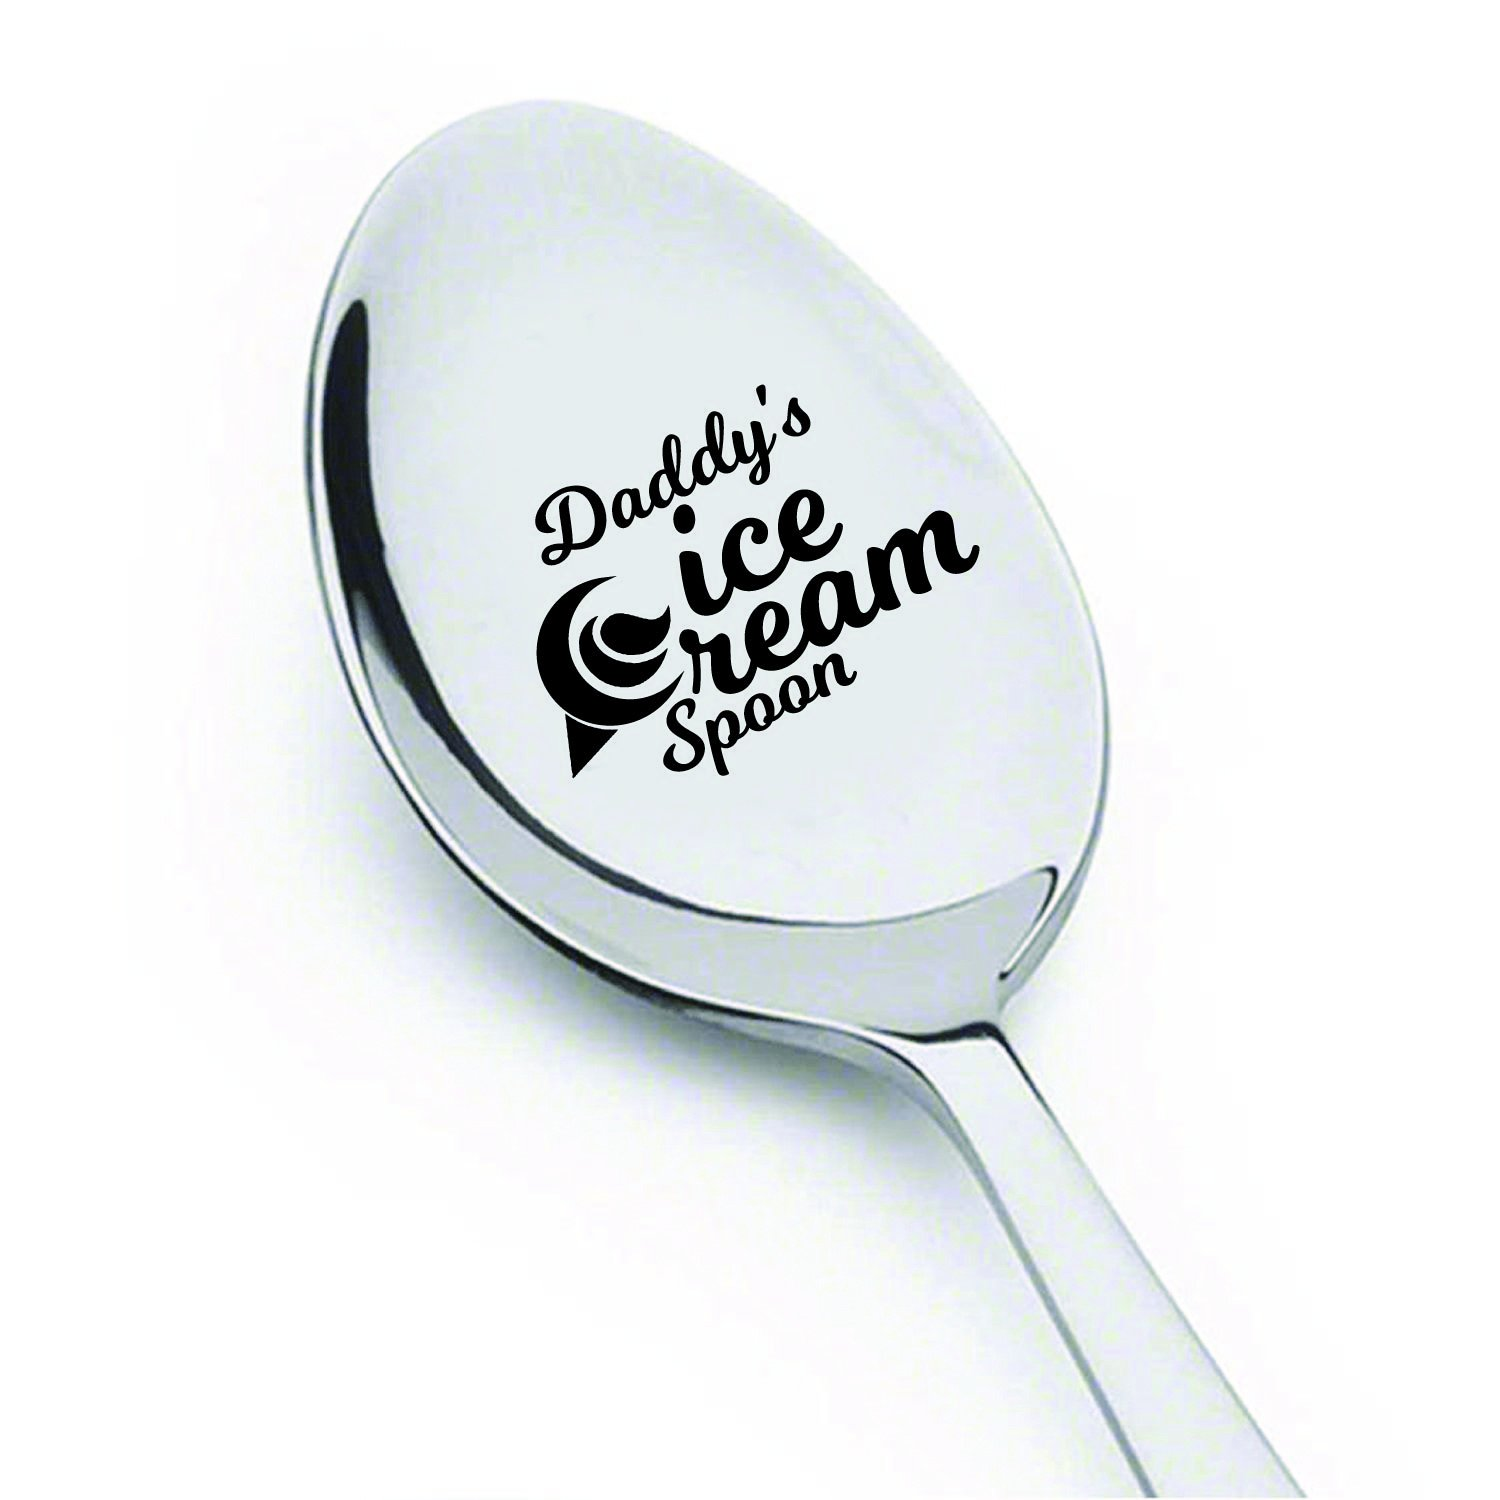 Dad gifts - Fathers Day Gifts - Gifts for men - Daddys Ice Cream Spoon - Best Selling item - Funny gifts - Birthday Gifts - Unique Gifts - Gifts for Dad - Gifts for Grandpa - Engraved Spoon - 7 Inches